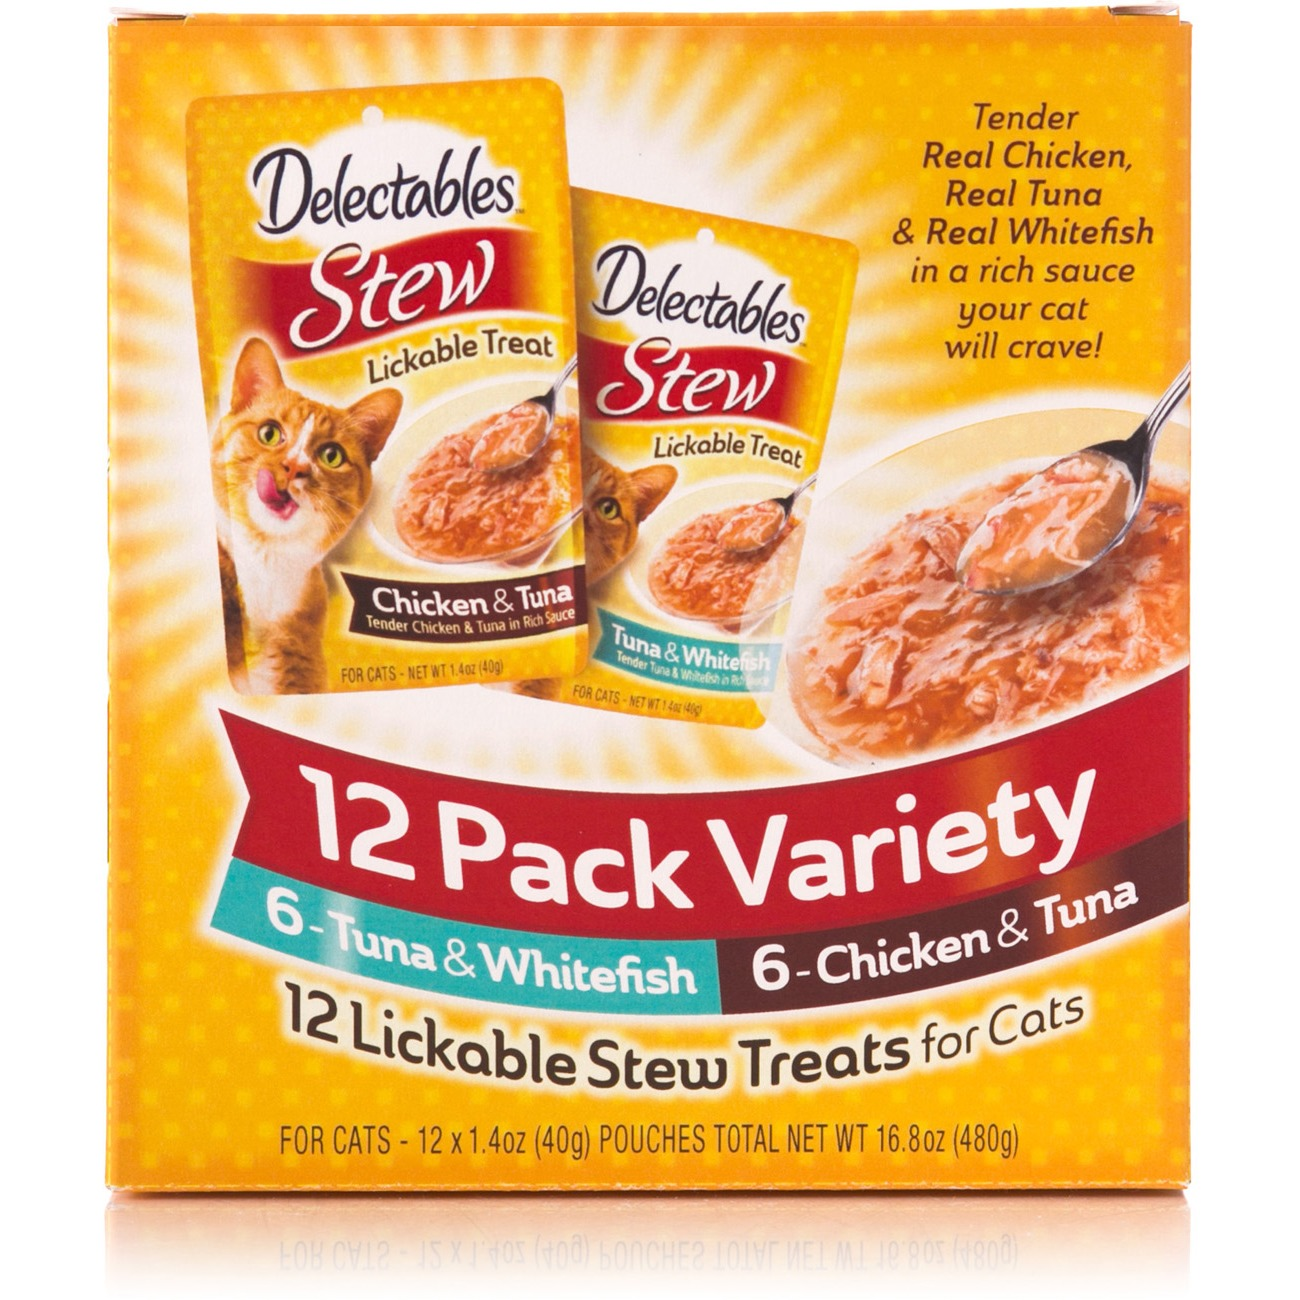 Delectables Lickable Cat Treats Stew 12 Count Variety Pack by Hartz Mountain Corp